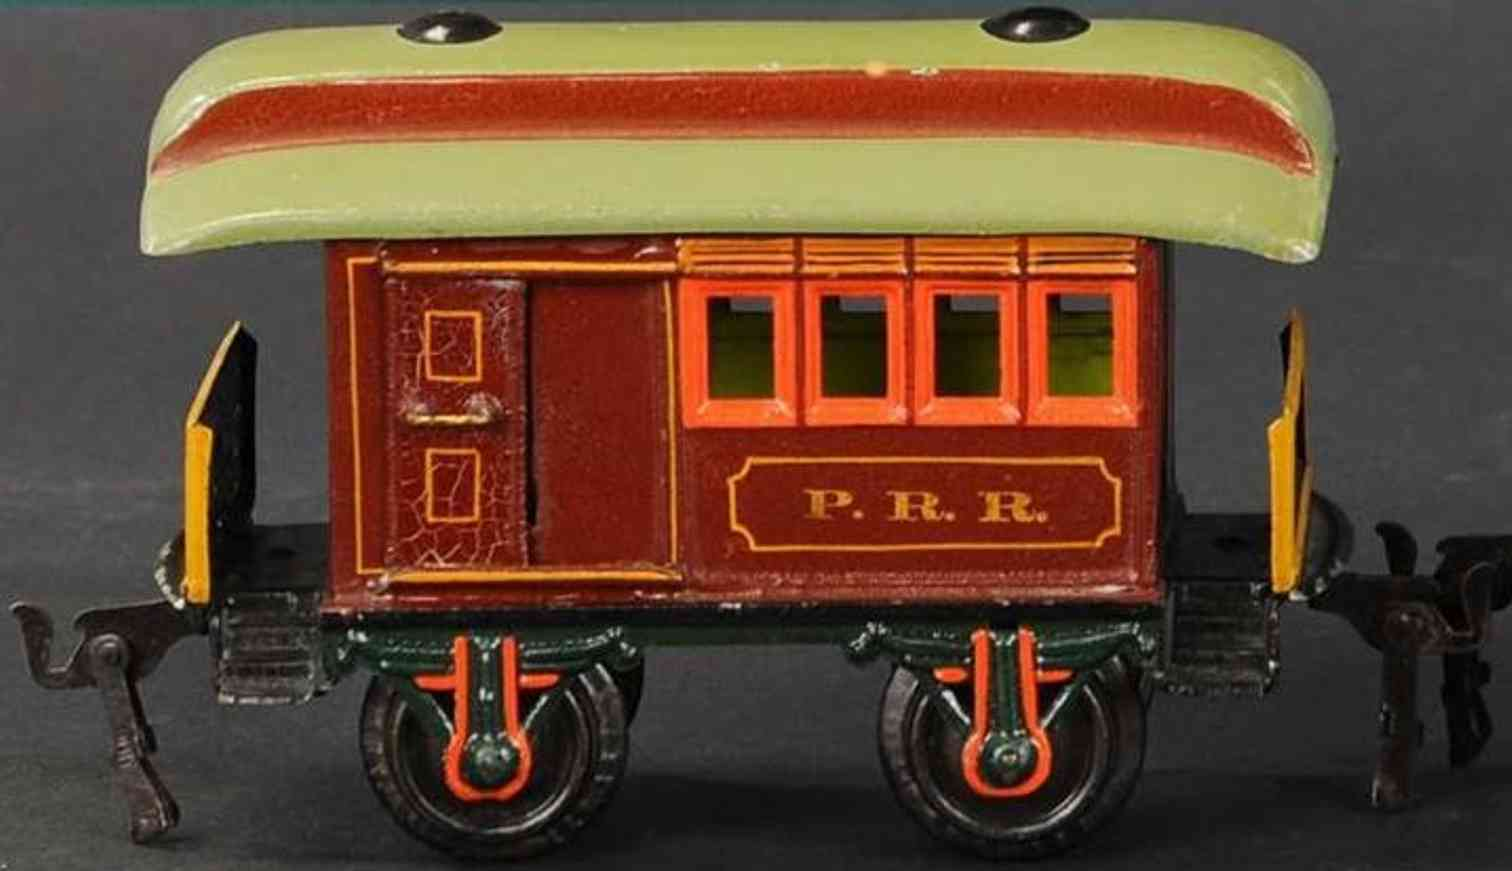 marklin maerklin 1876/1 prr railway toy baggage car brown gauge 1